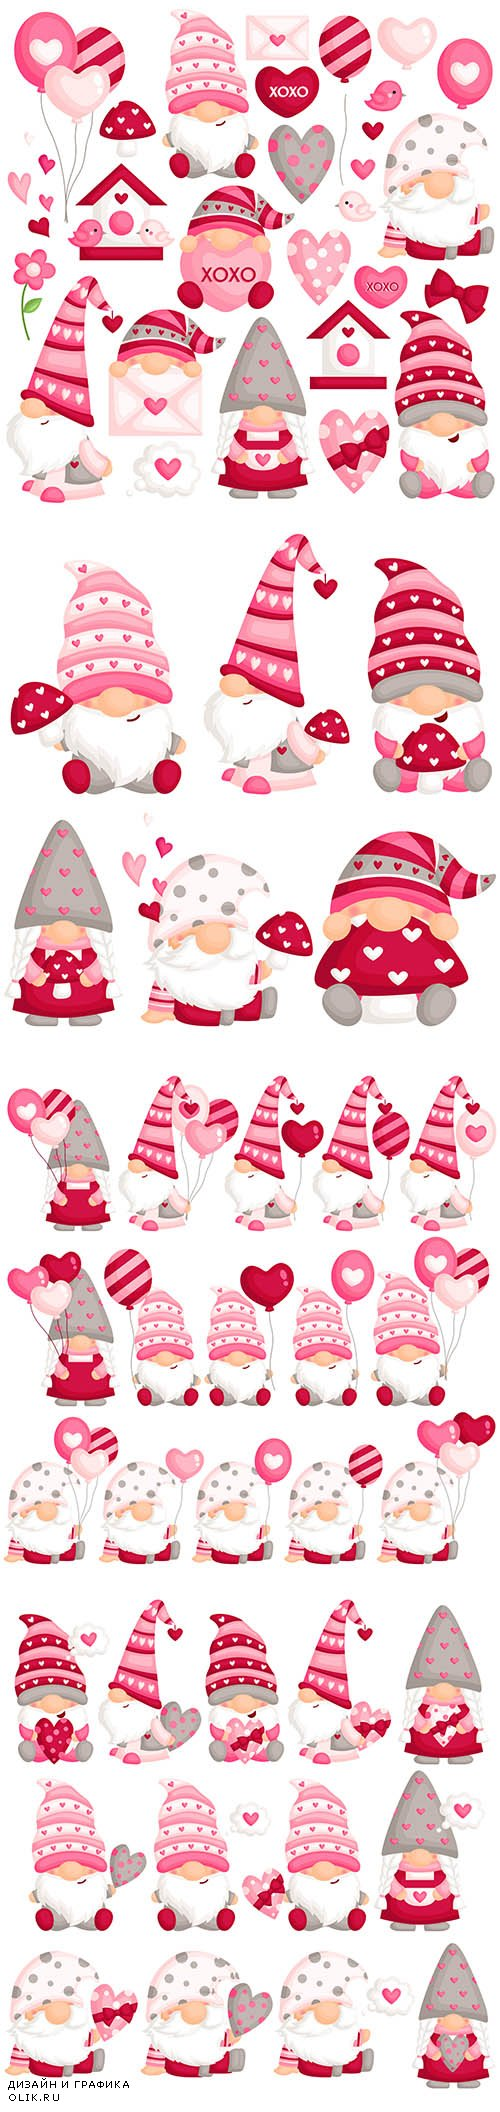 Valentine Gnome Love Set